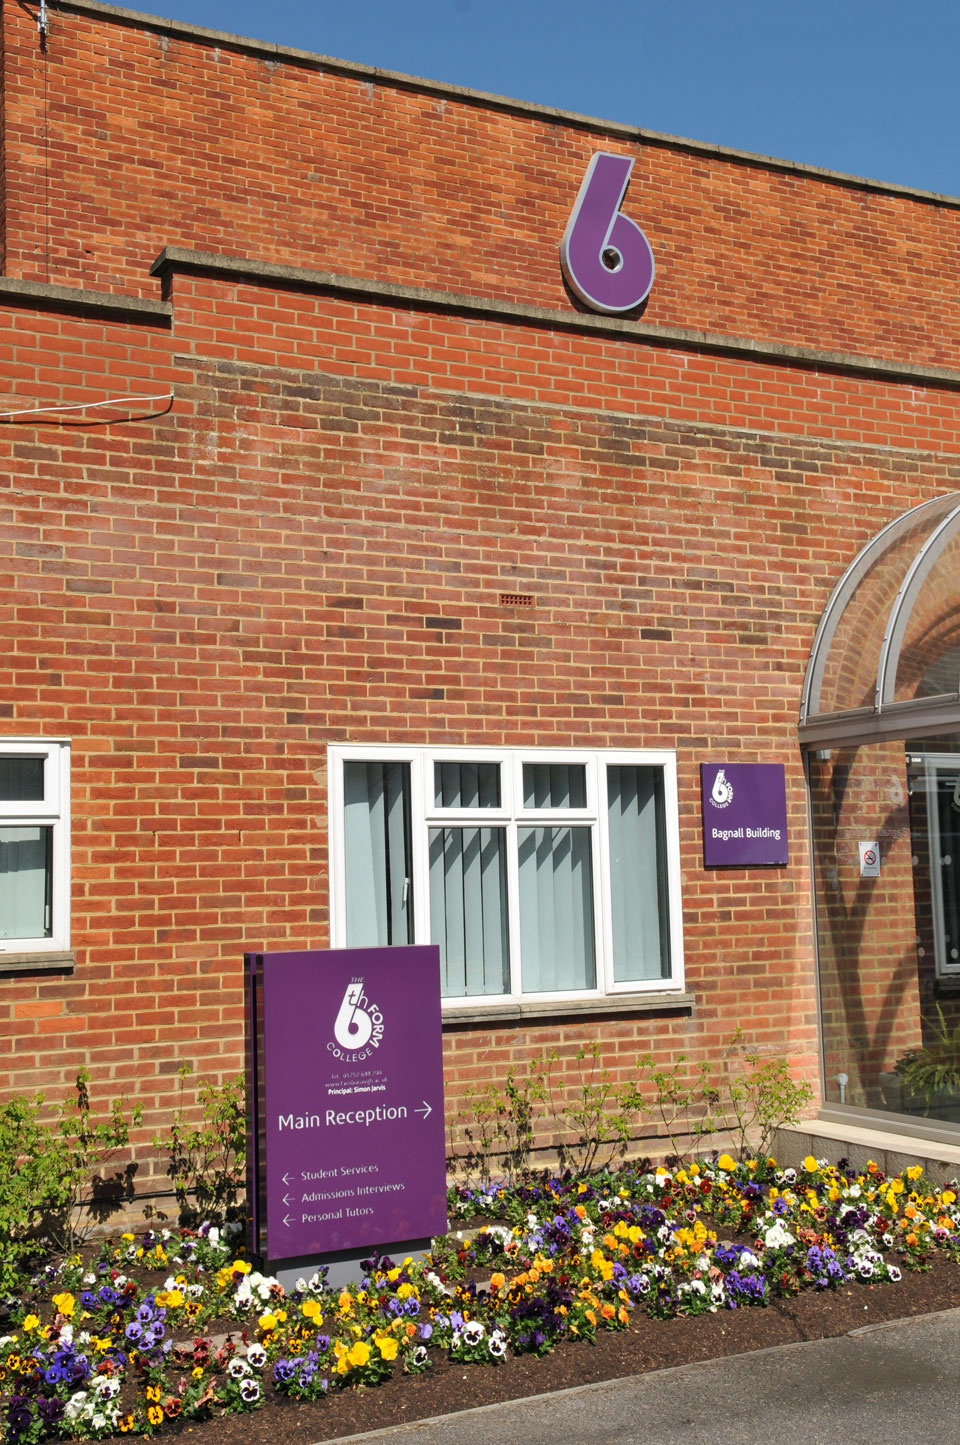 The 6th Form College Entrance and Building Identity